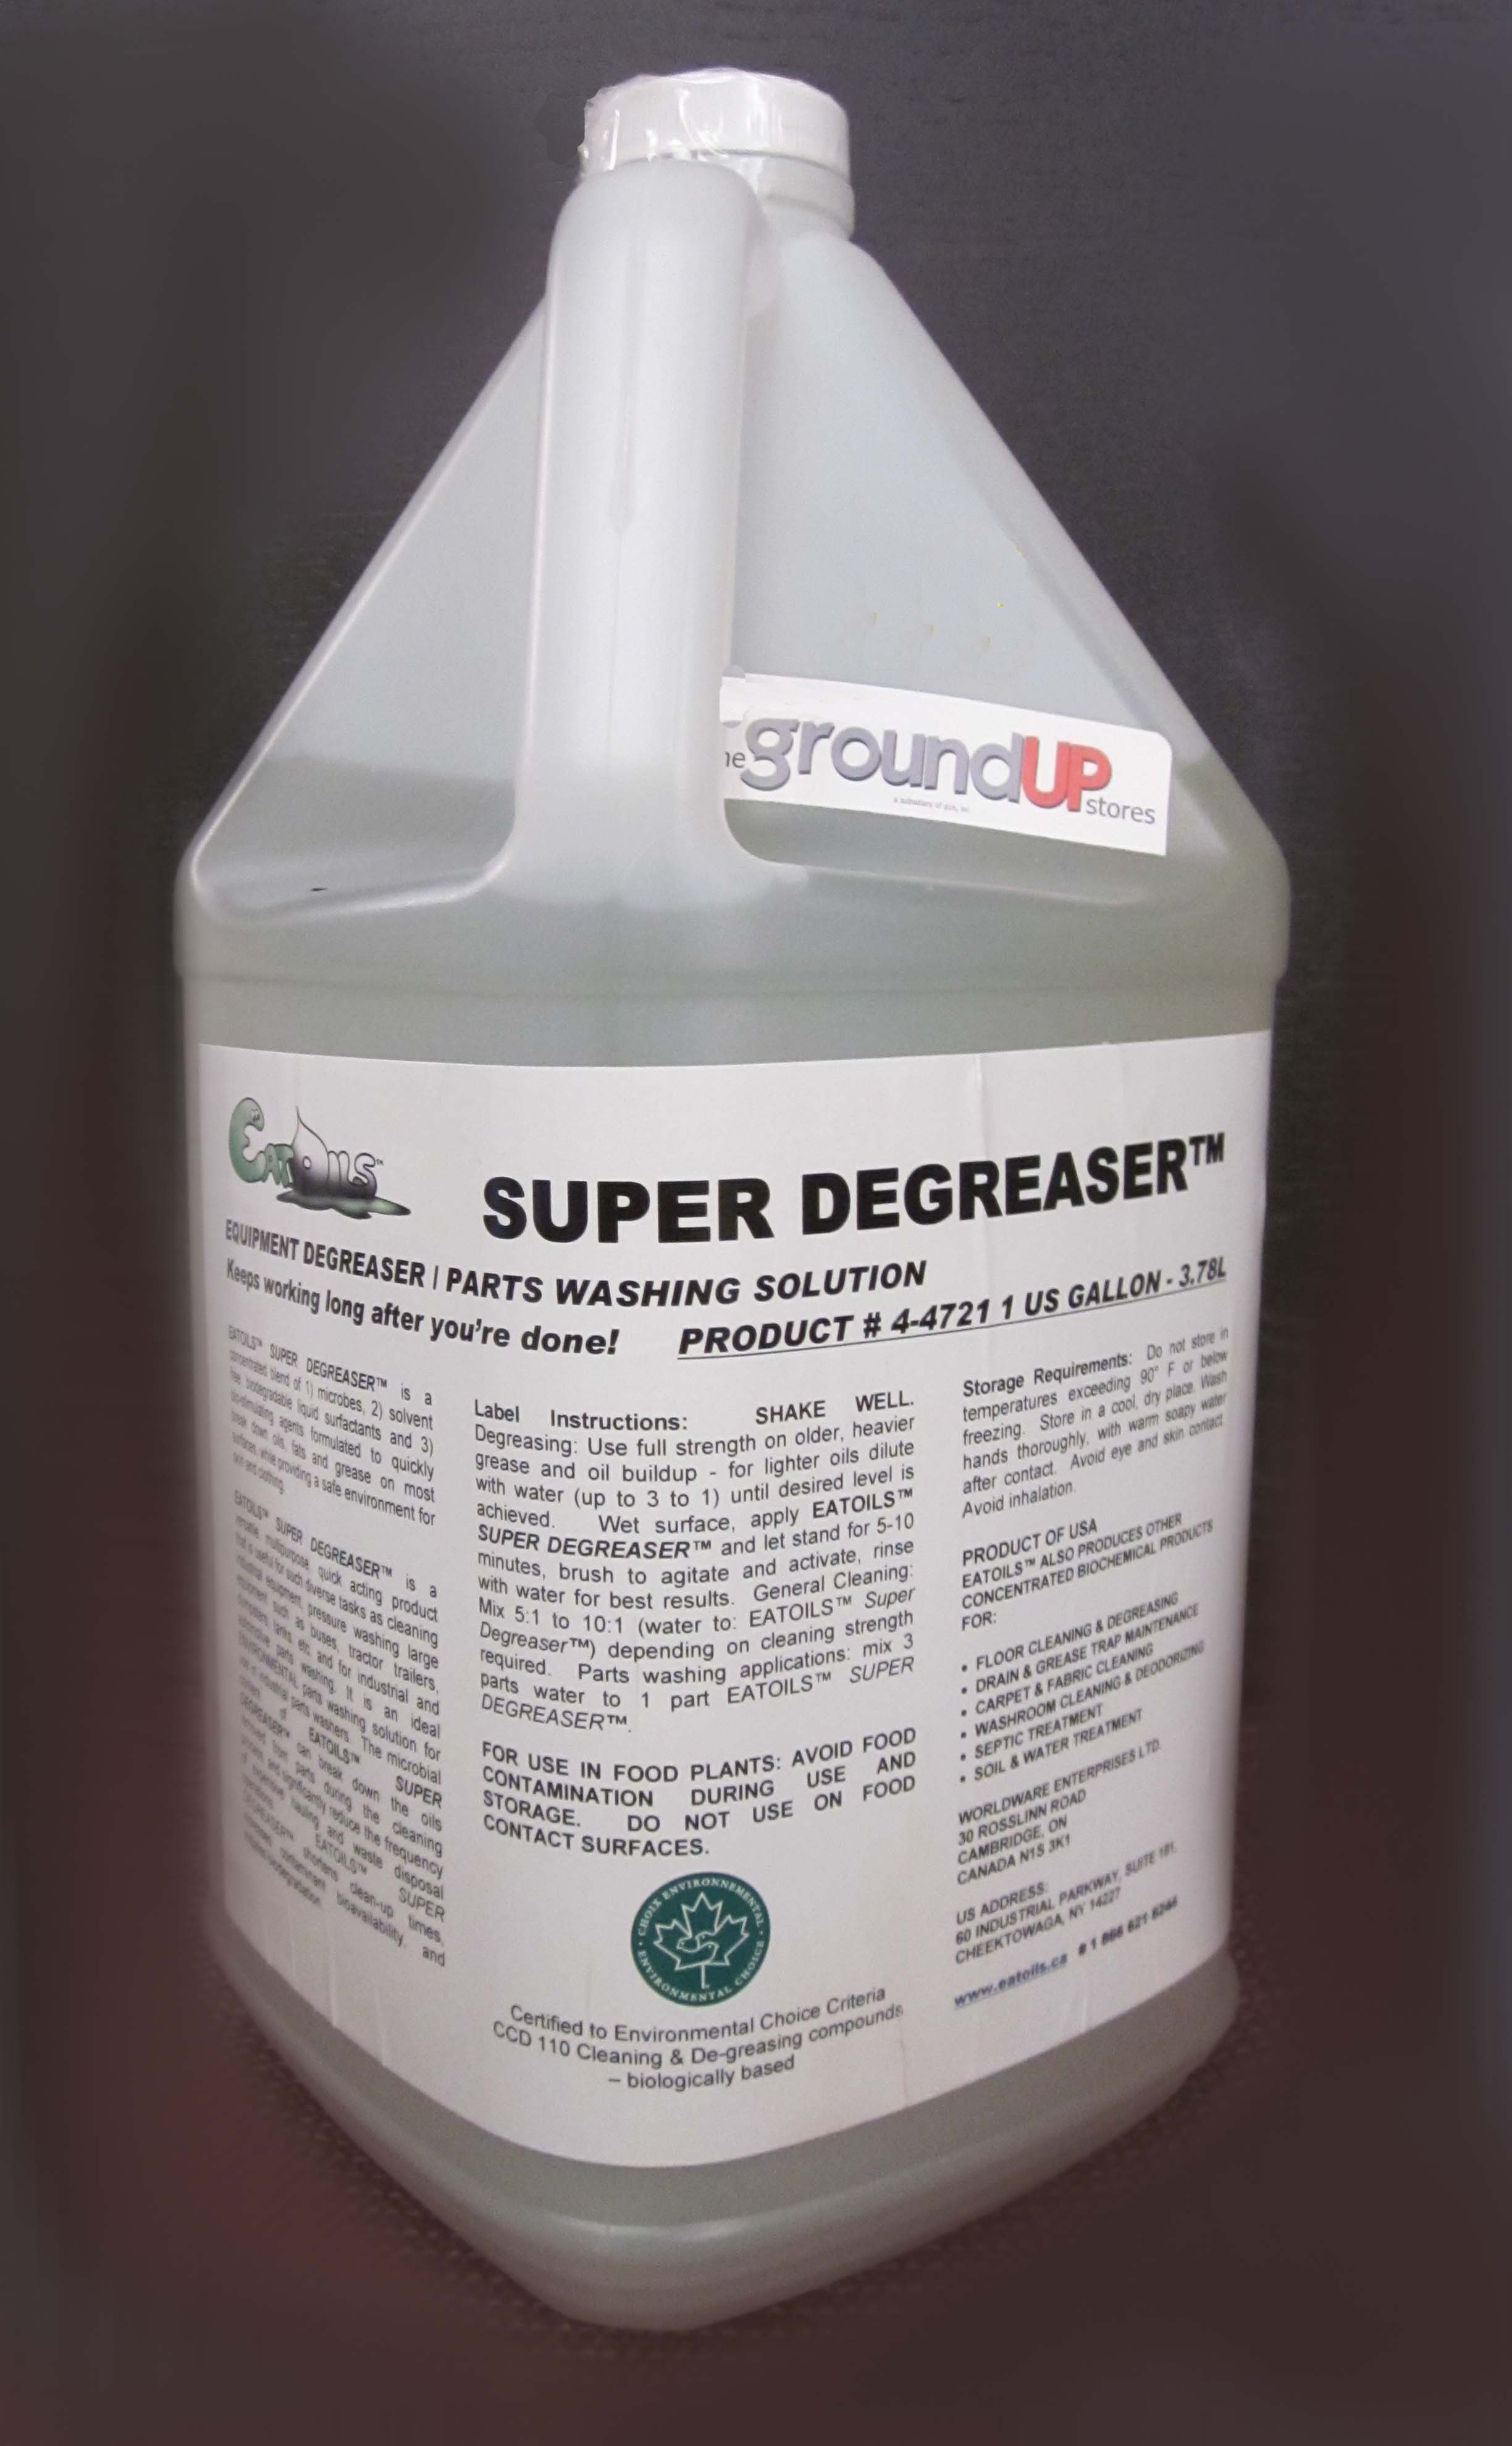 Image logo for SUPER DEGREASER - Equipment Degreaser and Parts Washing Solution